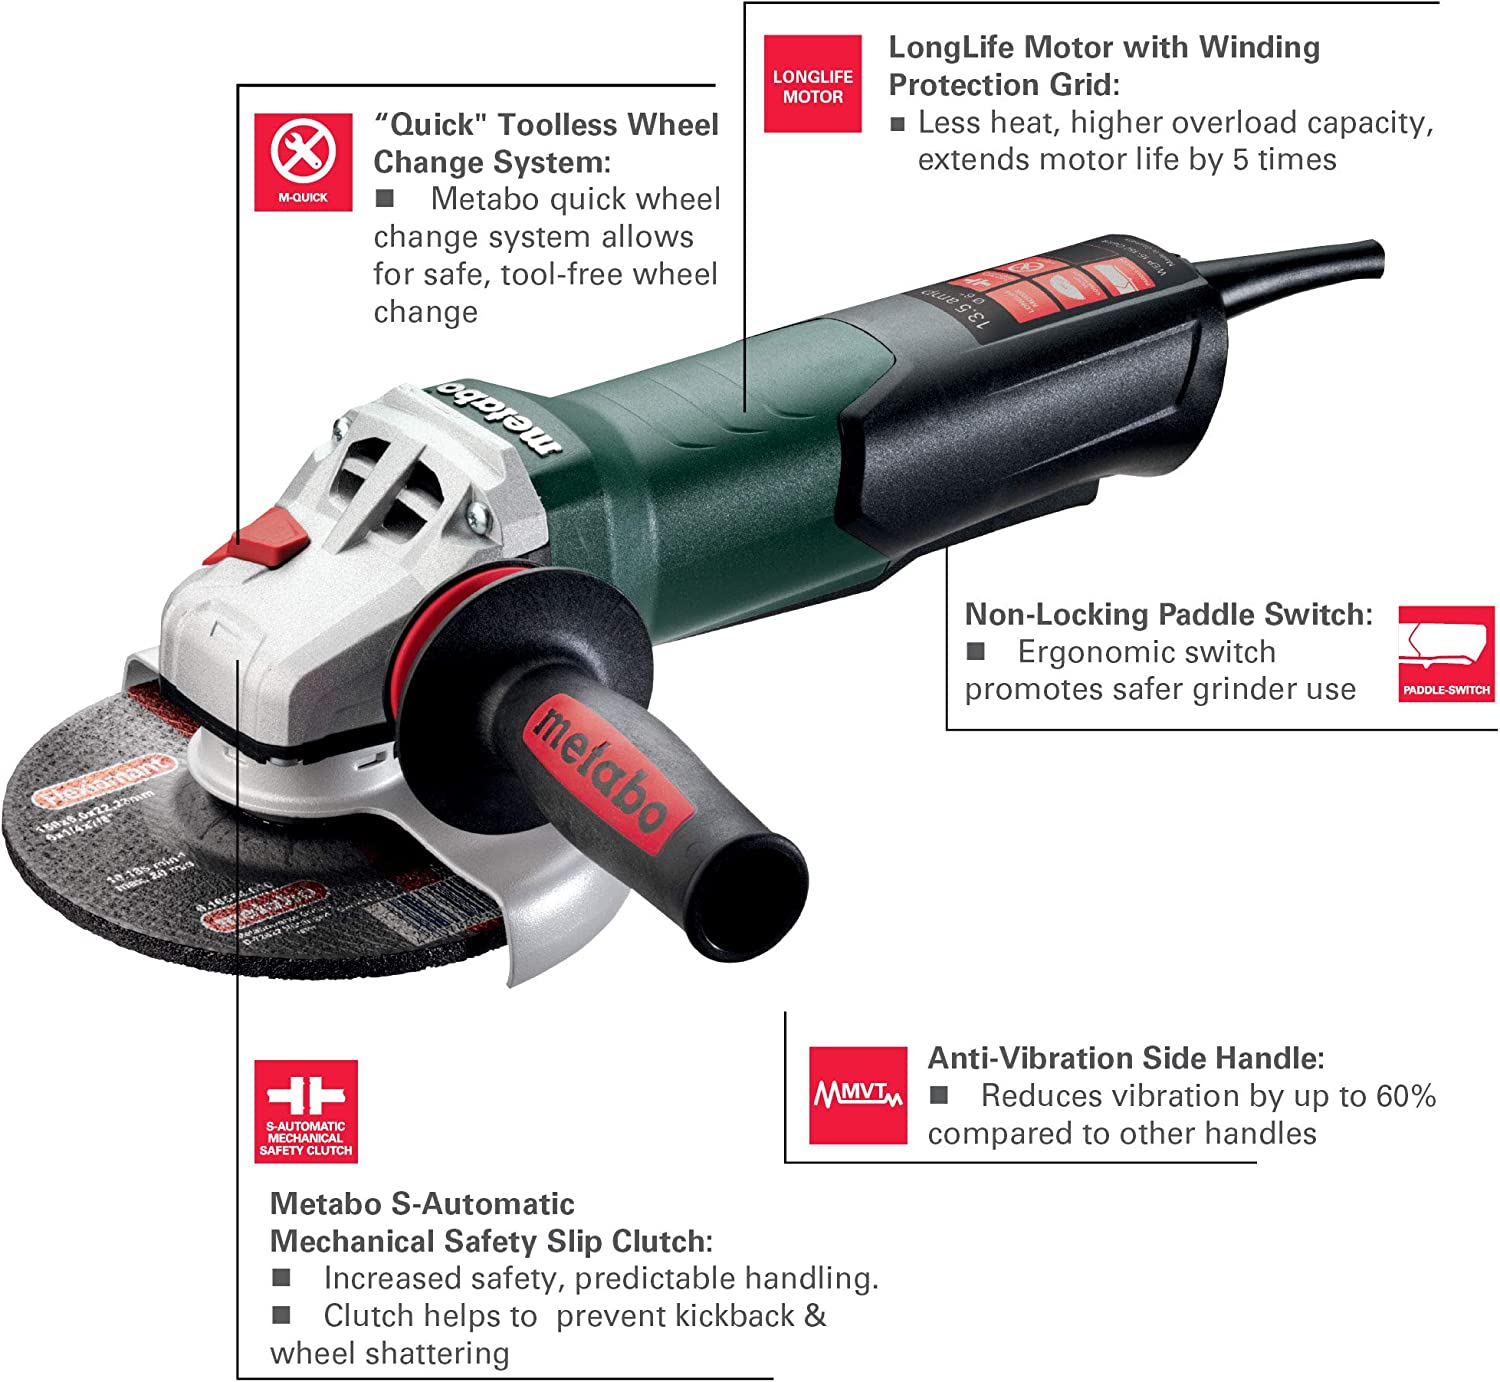 Metabo WEP15-150 Quick 13.5 Amp 9,600 rpm Angle Grinder with Electronics and Non-locking Paddle Switch, 6